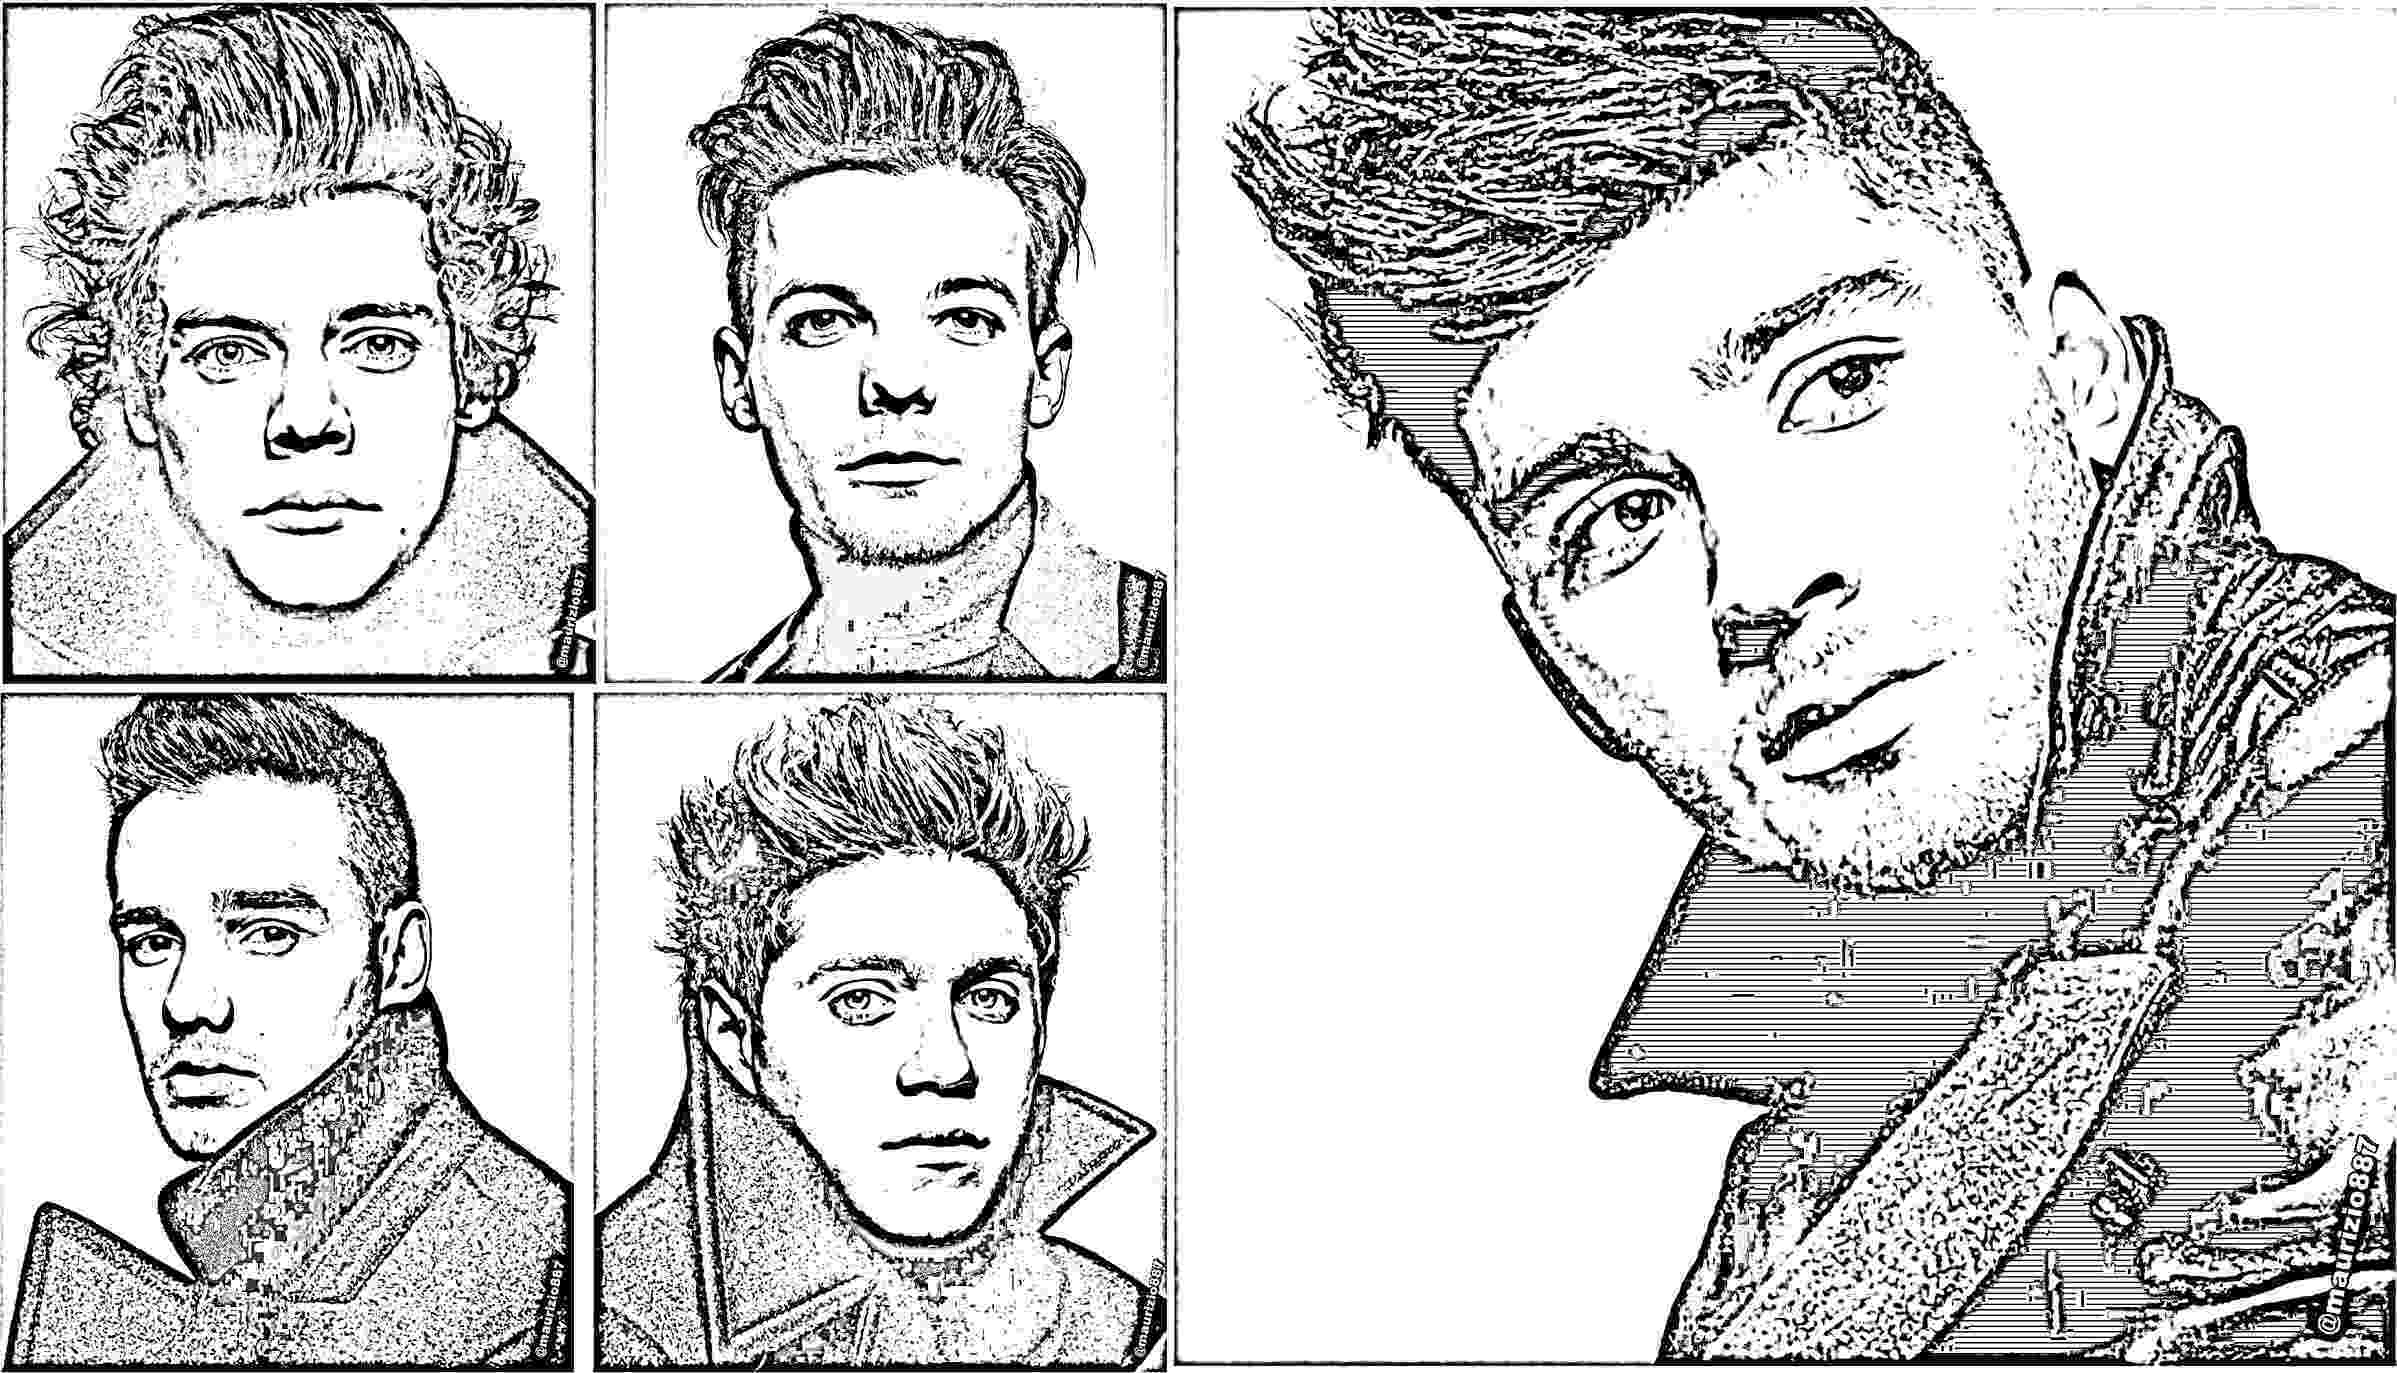 colouring pages for one direction 10 printable one direction coloring pages 9 j 14 direction pages colouring one for